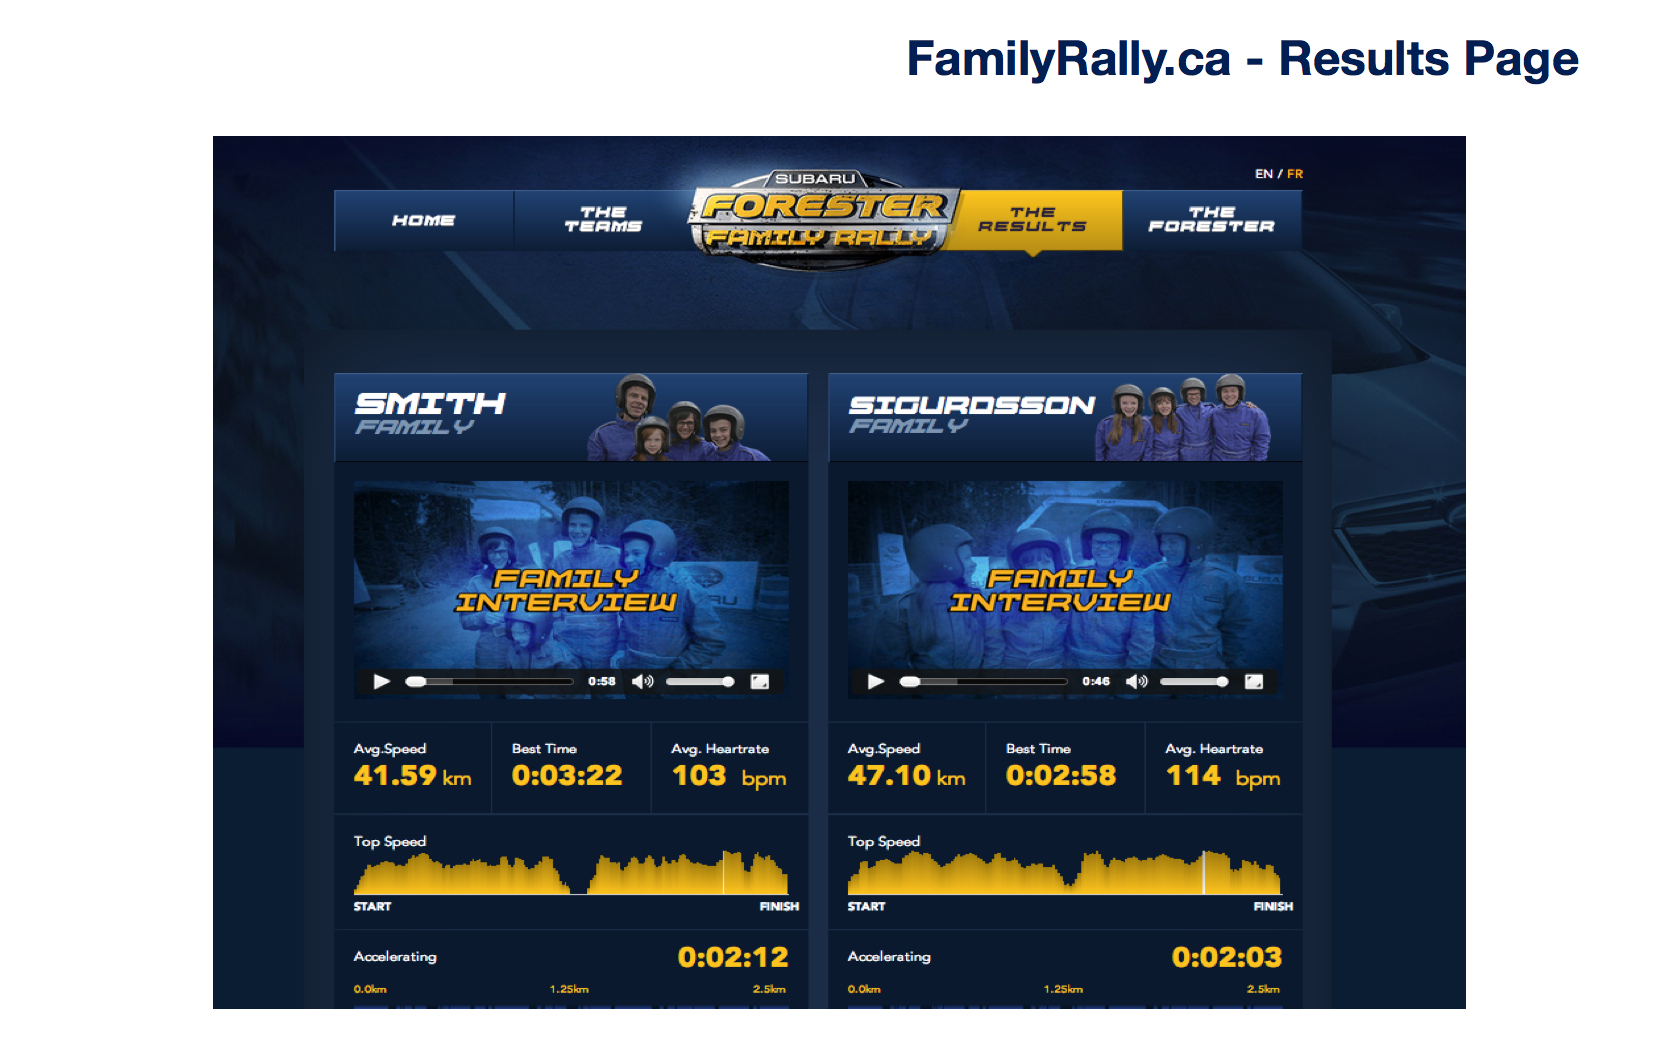 12325_Cassies_-_Subaru_Forester_Family_Rally_Creative_Elements.008